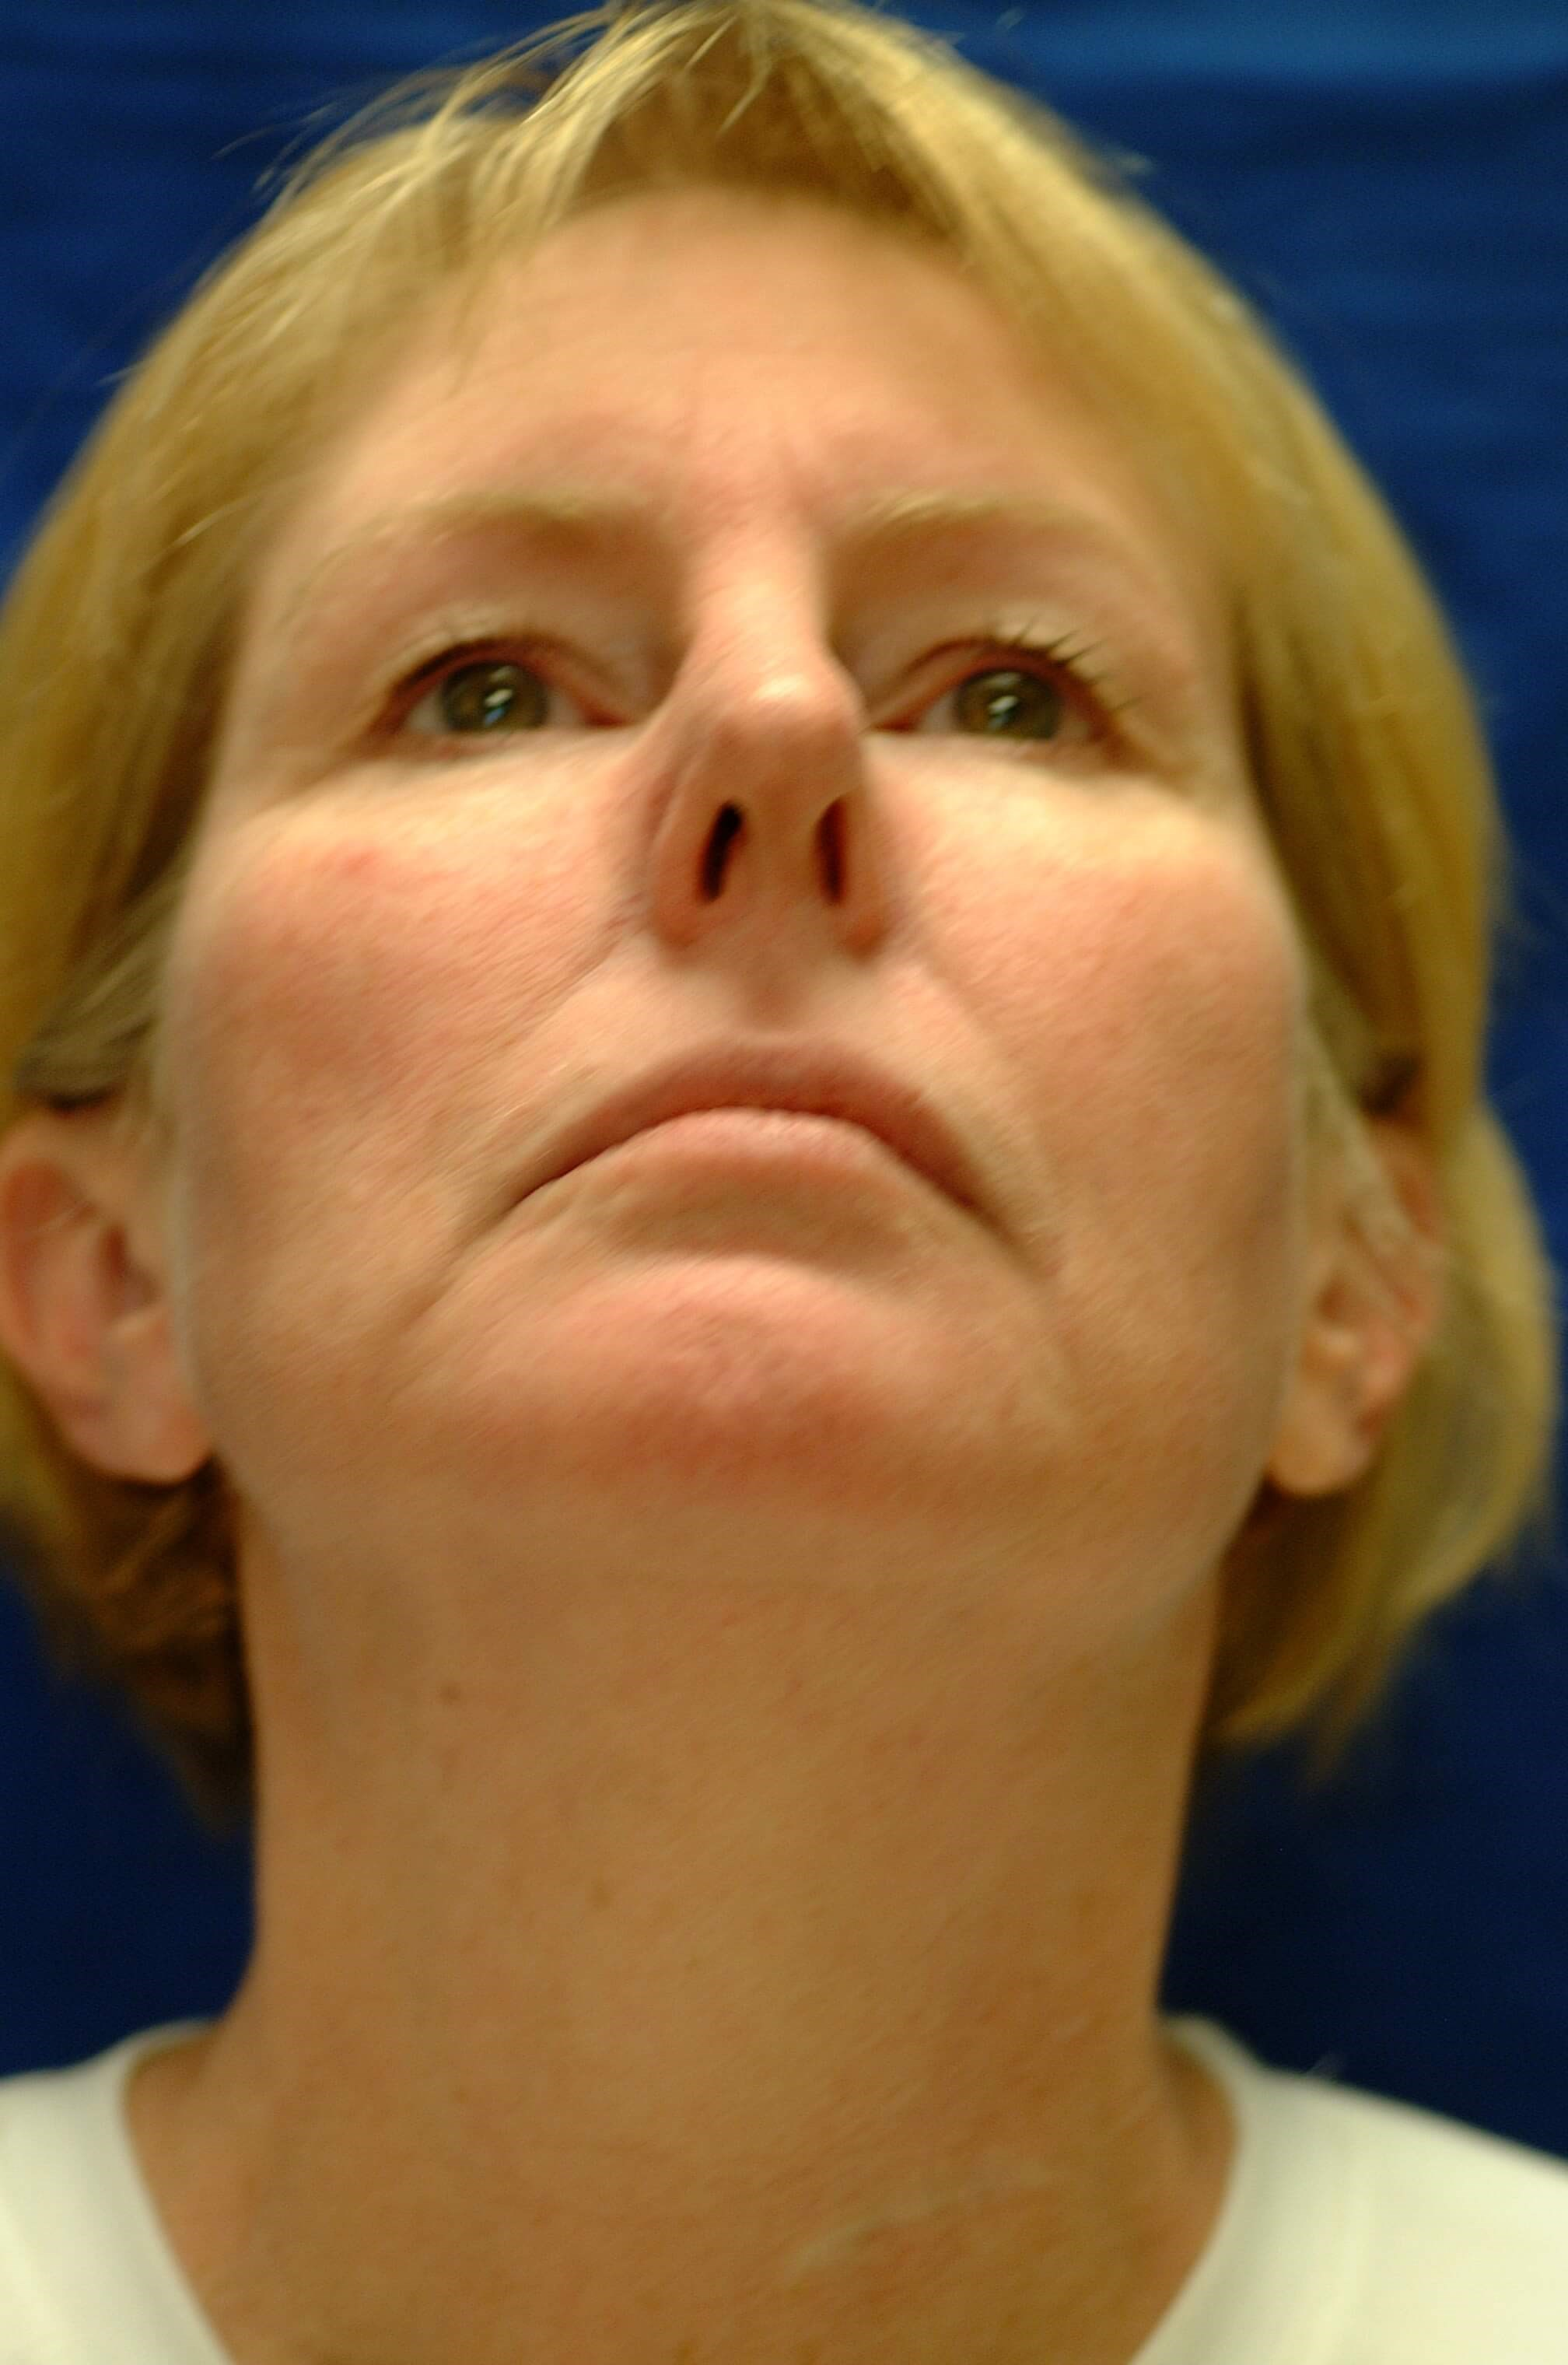 Newport Facelift/Rhinoplasty Worm's Eye View Before